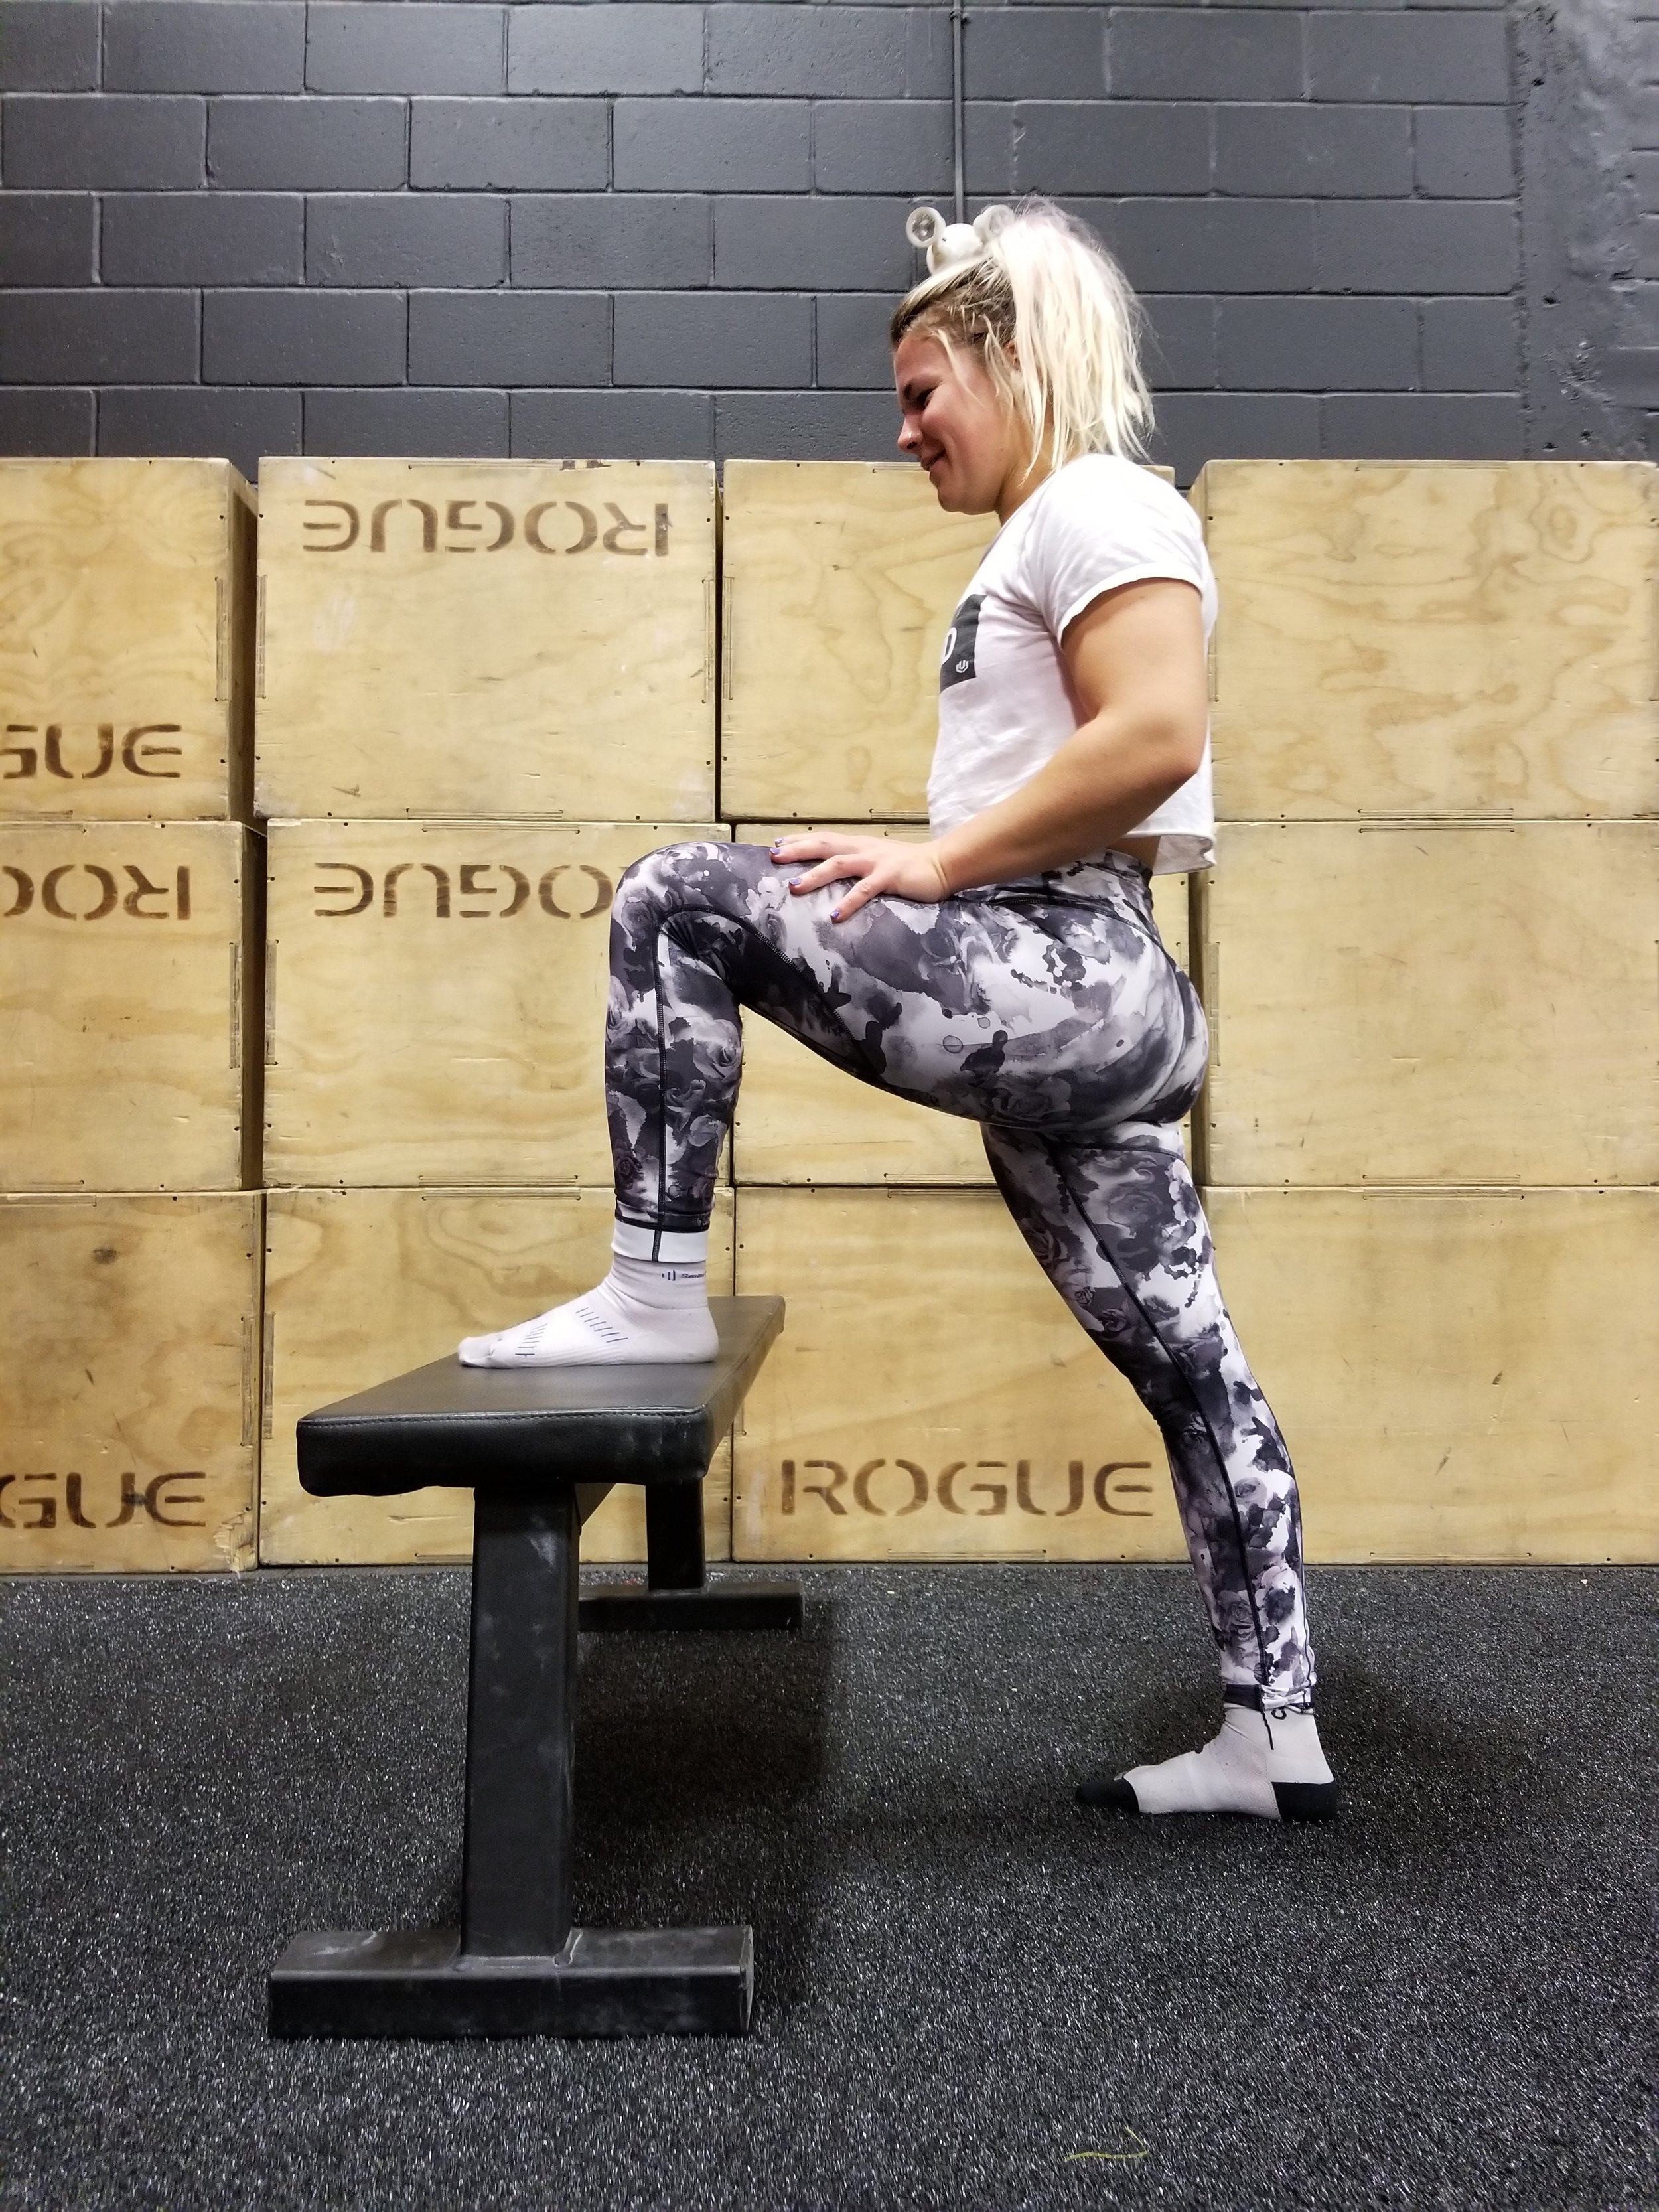 Place the foot of your affected side on a chair. Rock your hips forward and back into a lunge while keeping your body upright. Repeat this 15-20 times as a slow, rhythmical movement. -